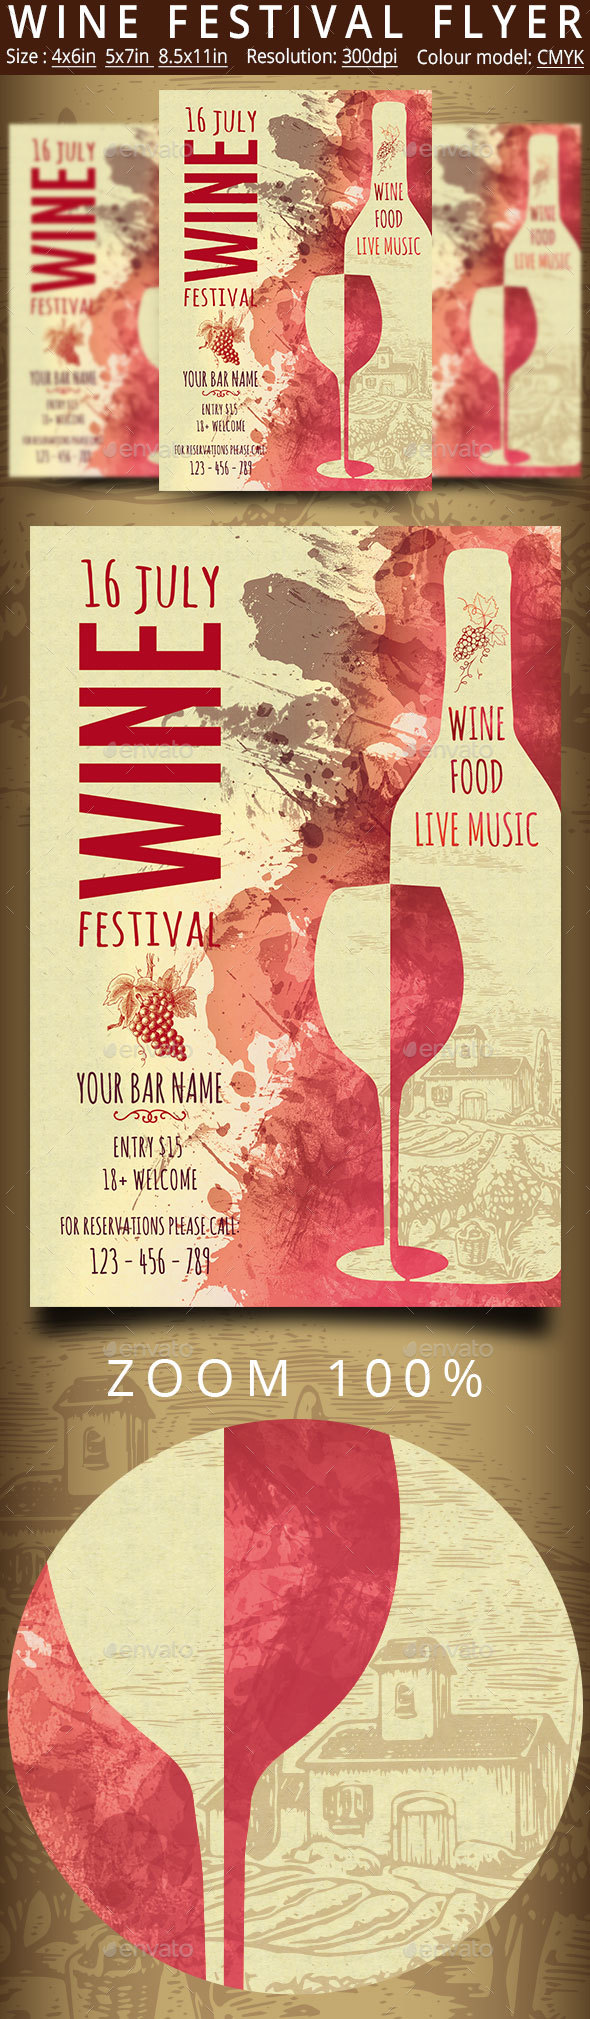 Wine Festival Flyer Vintage - Events Flyers